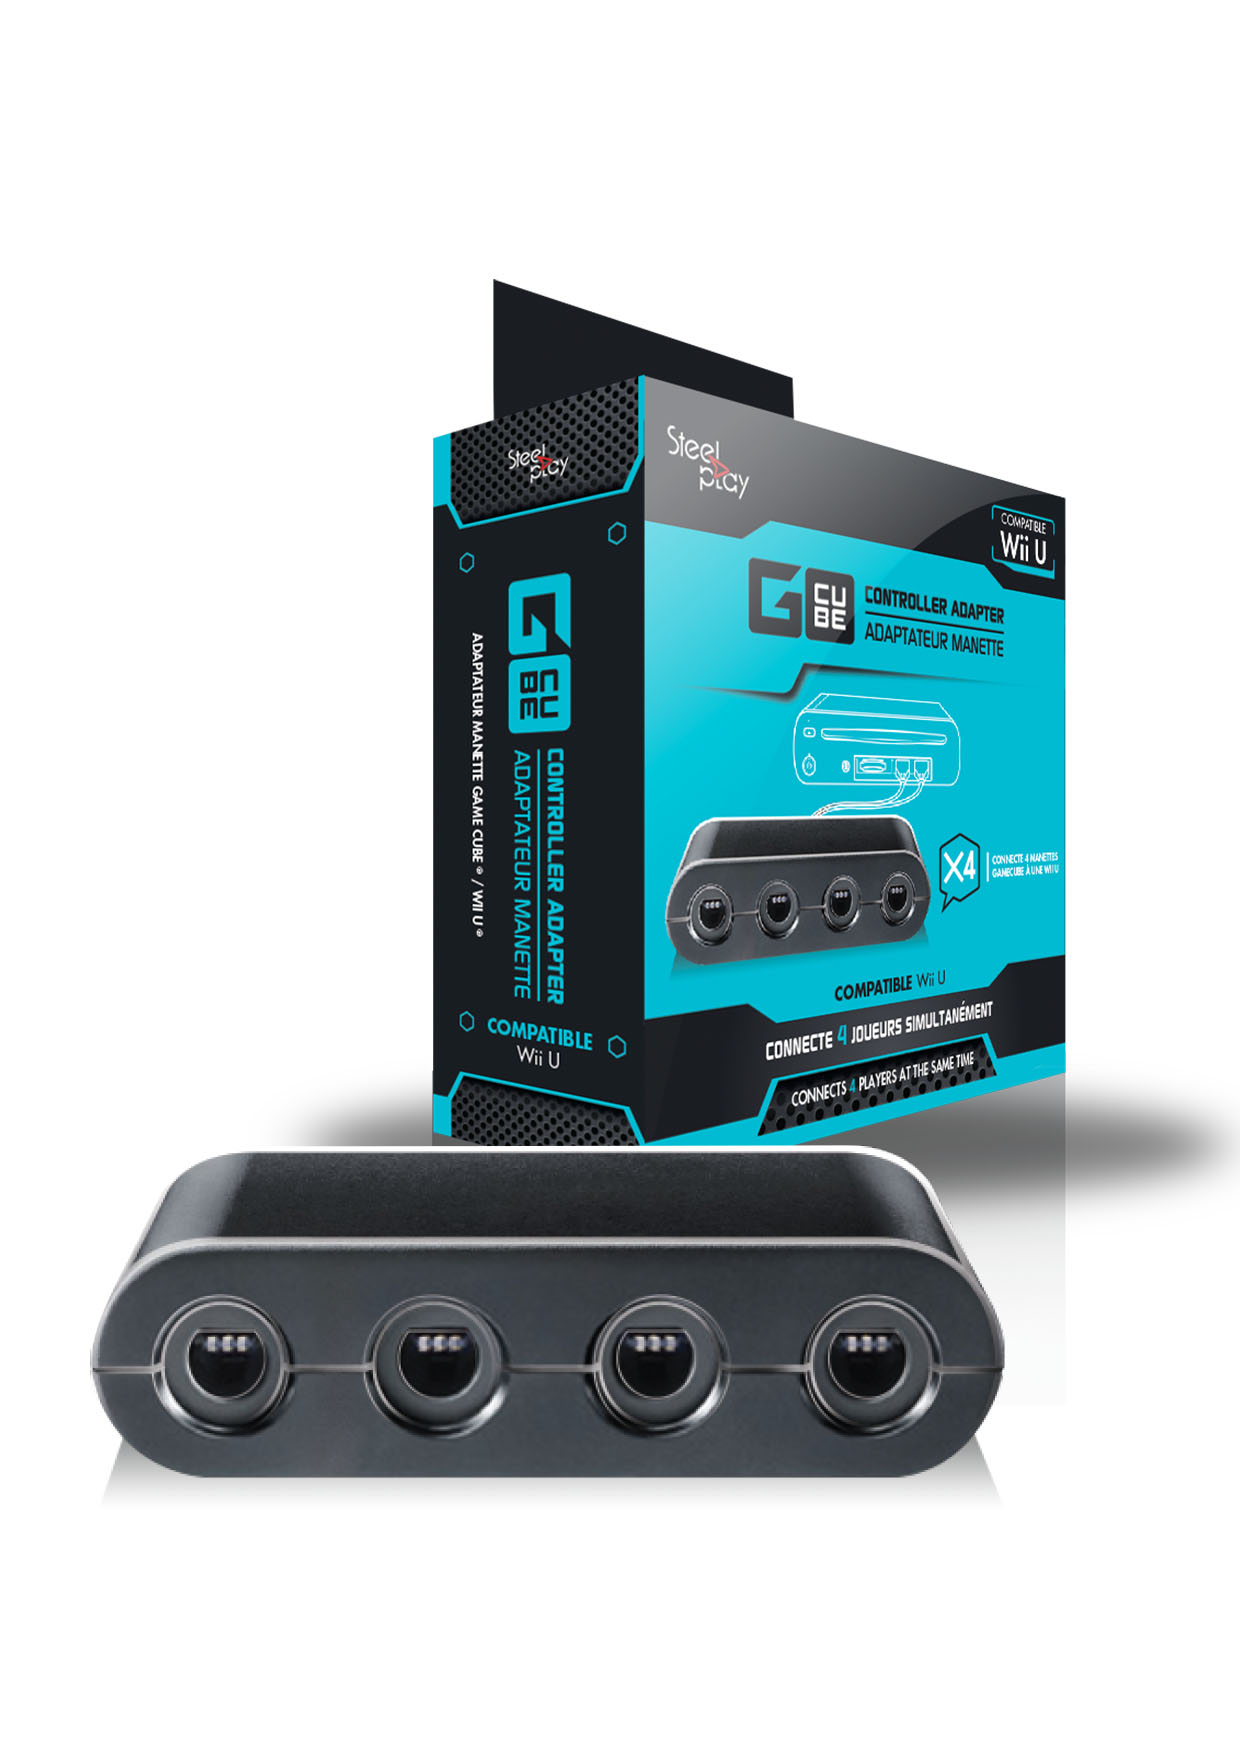 how to play gamecube and wii backups on wii u